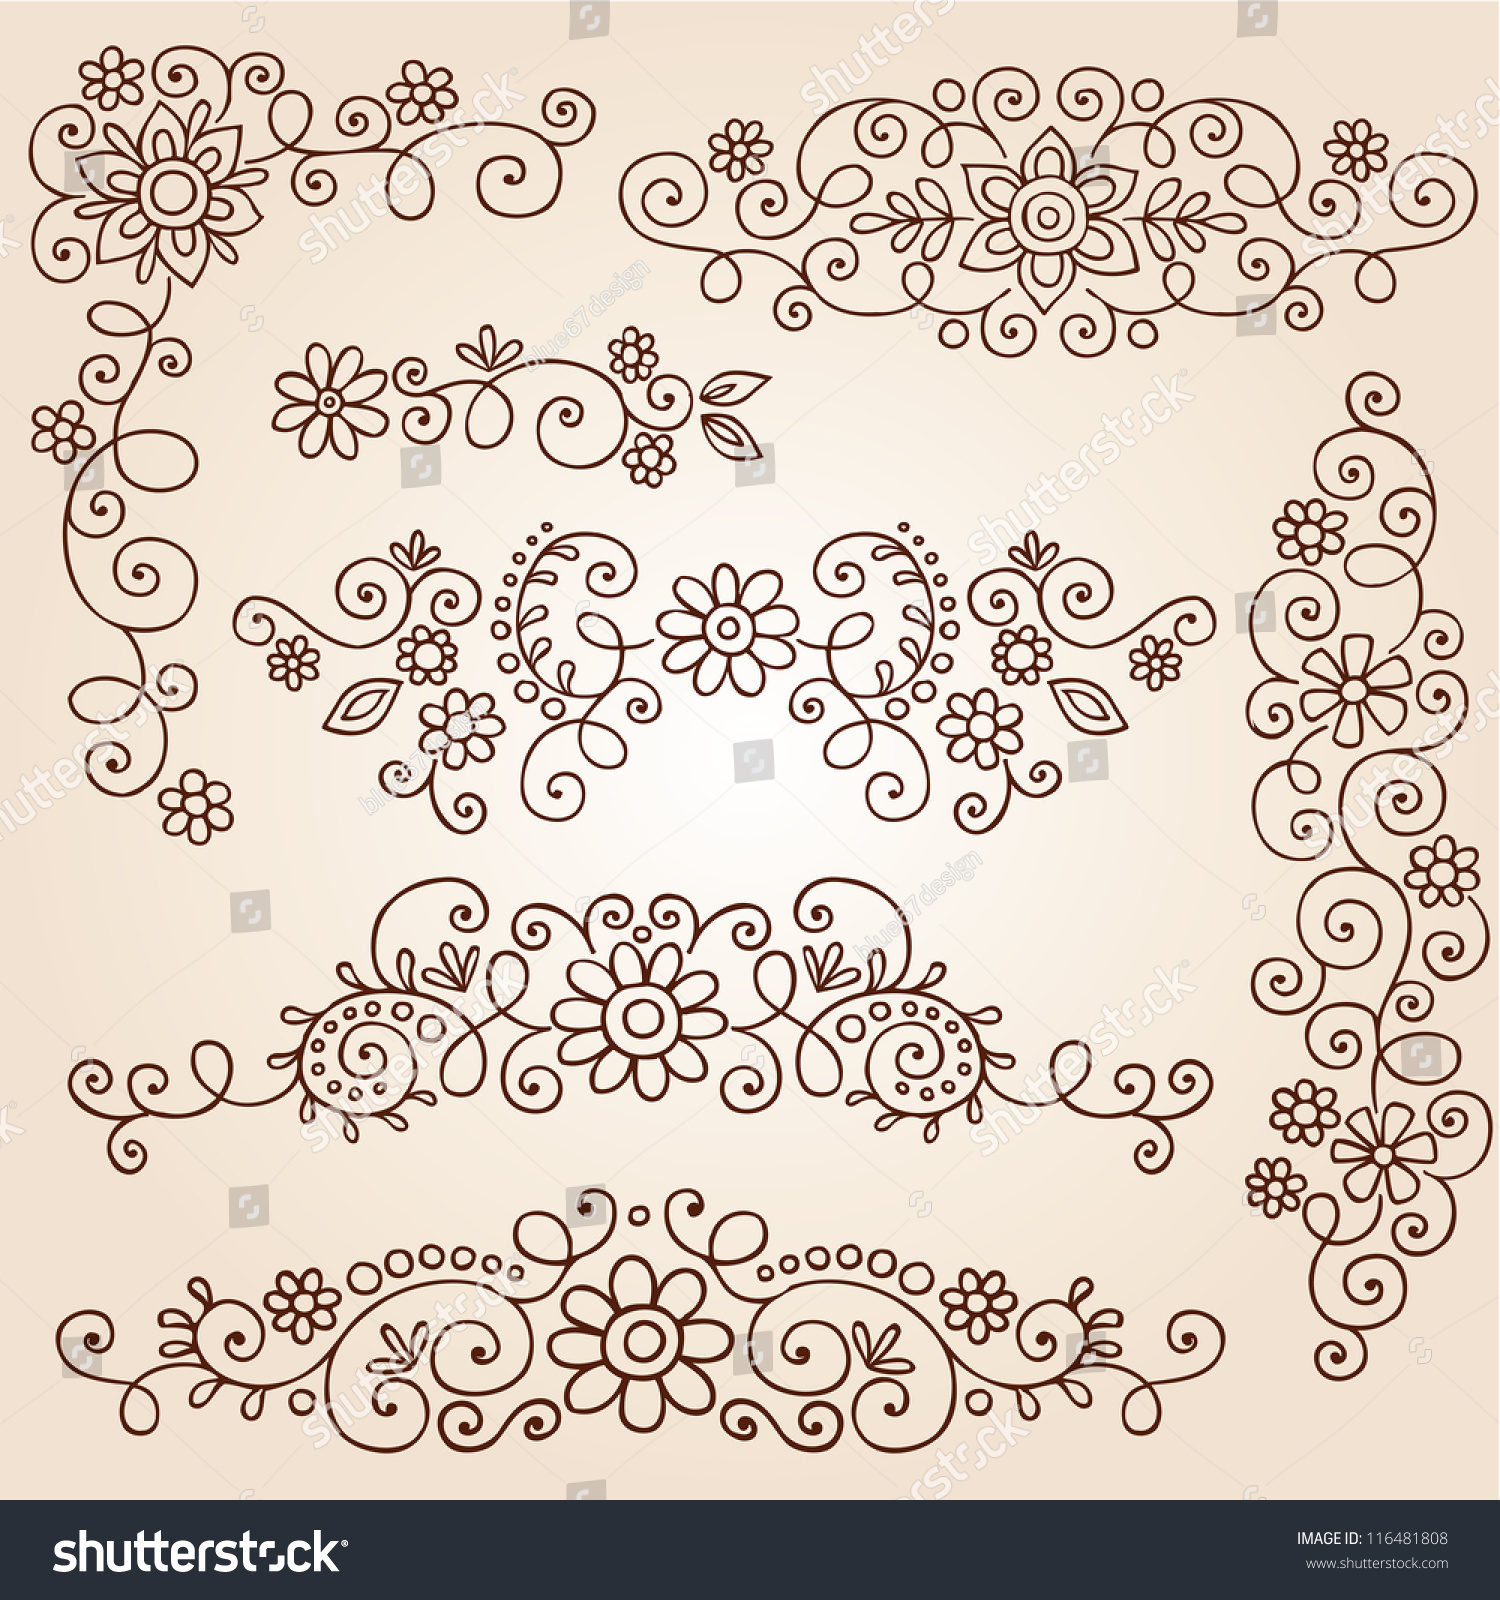 Henna Paisley Vines Flowers Mehndi Tattoo Stock Vector Royalty Free